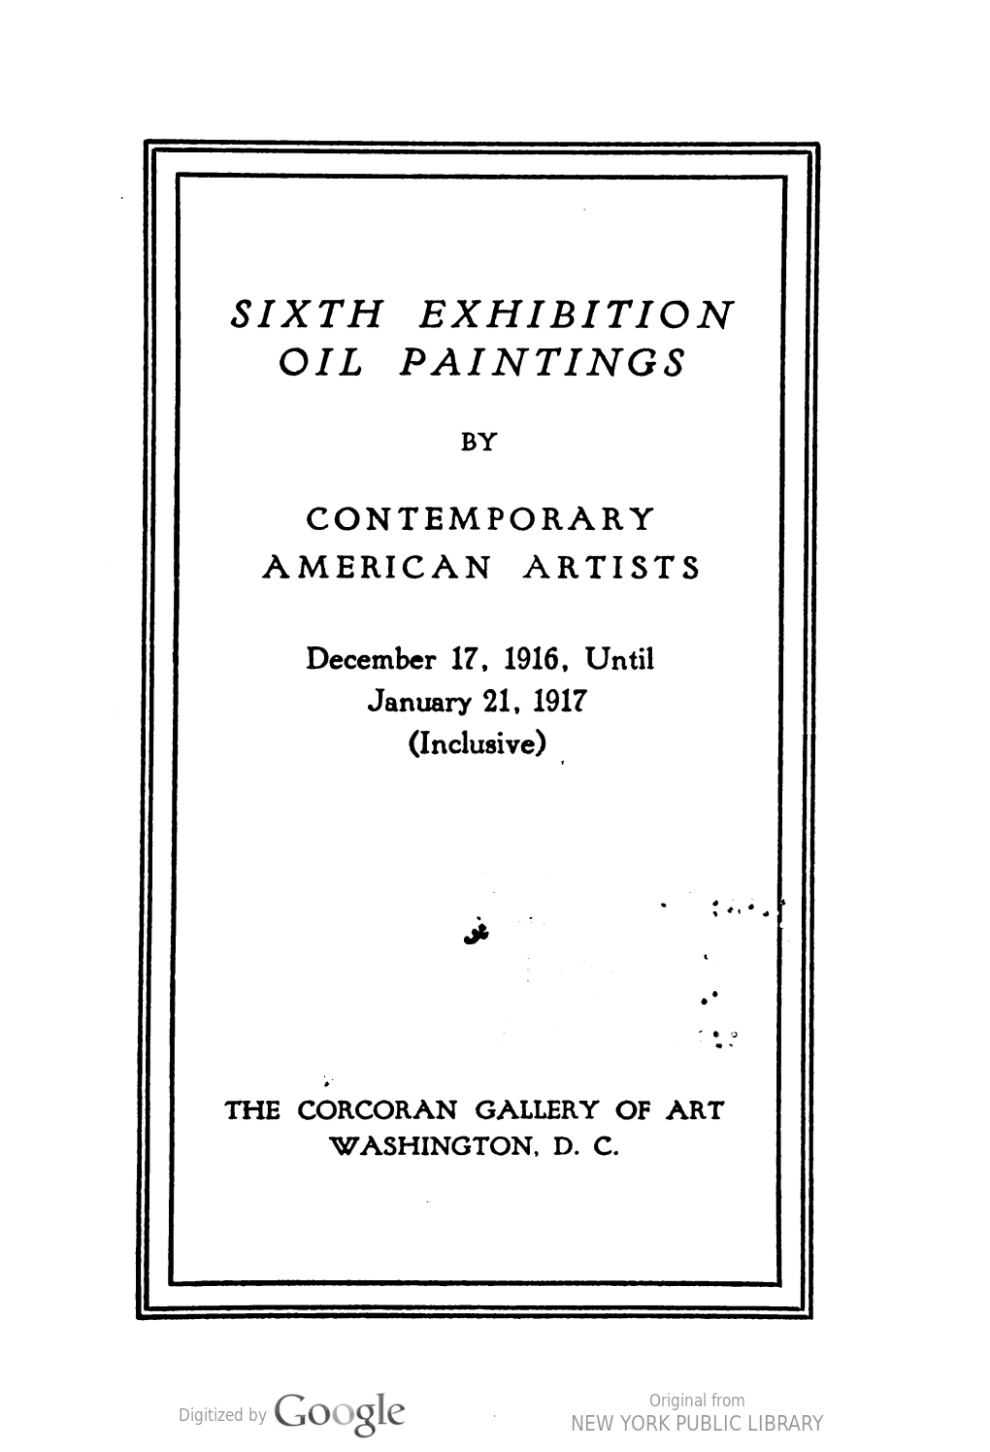 "1919-1920 The Corcoran Gallery of Art, Washington, DC, ""Seventh Exhibition Oil Paintings by Contemporary American Artists"", December 21, 1919 – January 25, 1920"